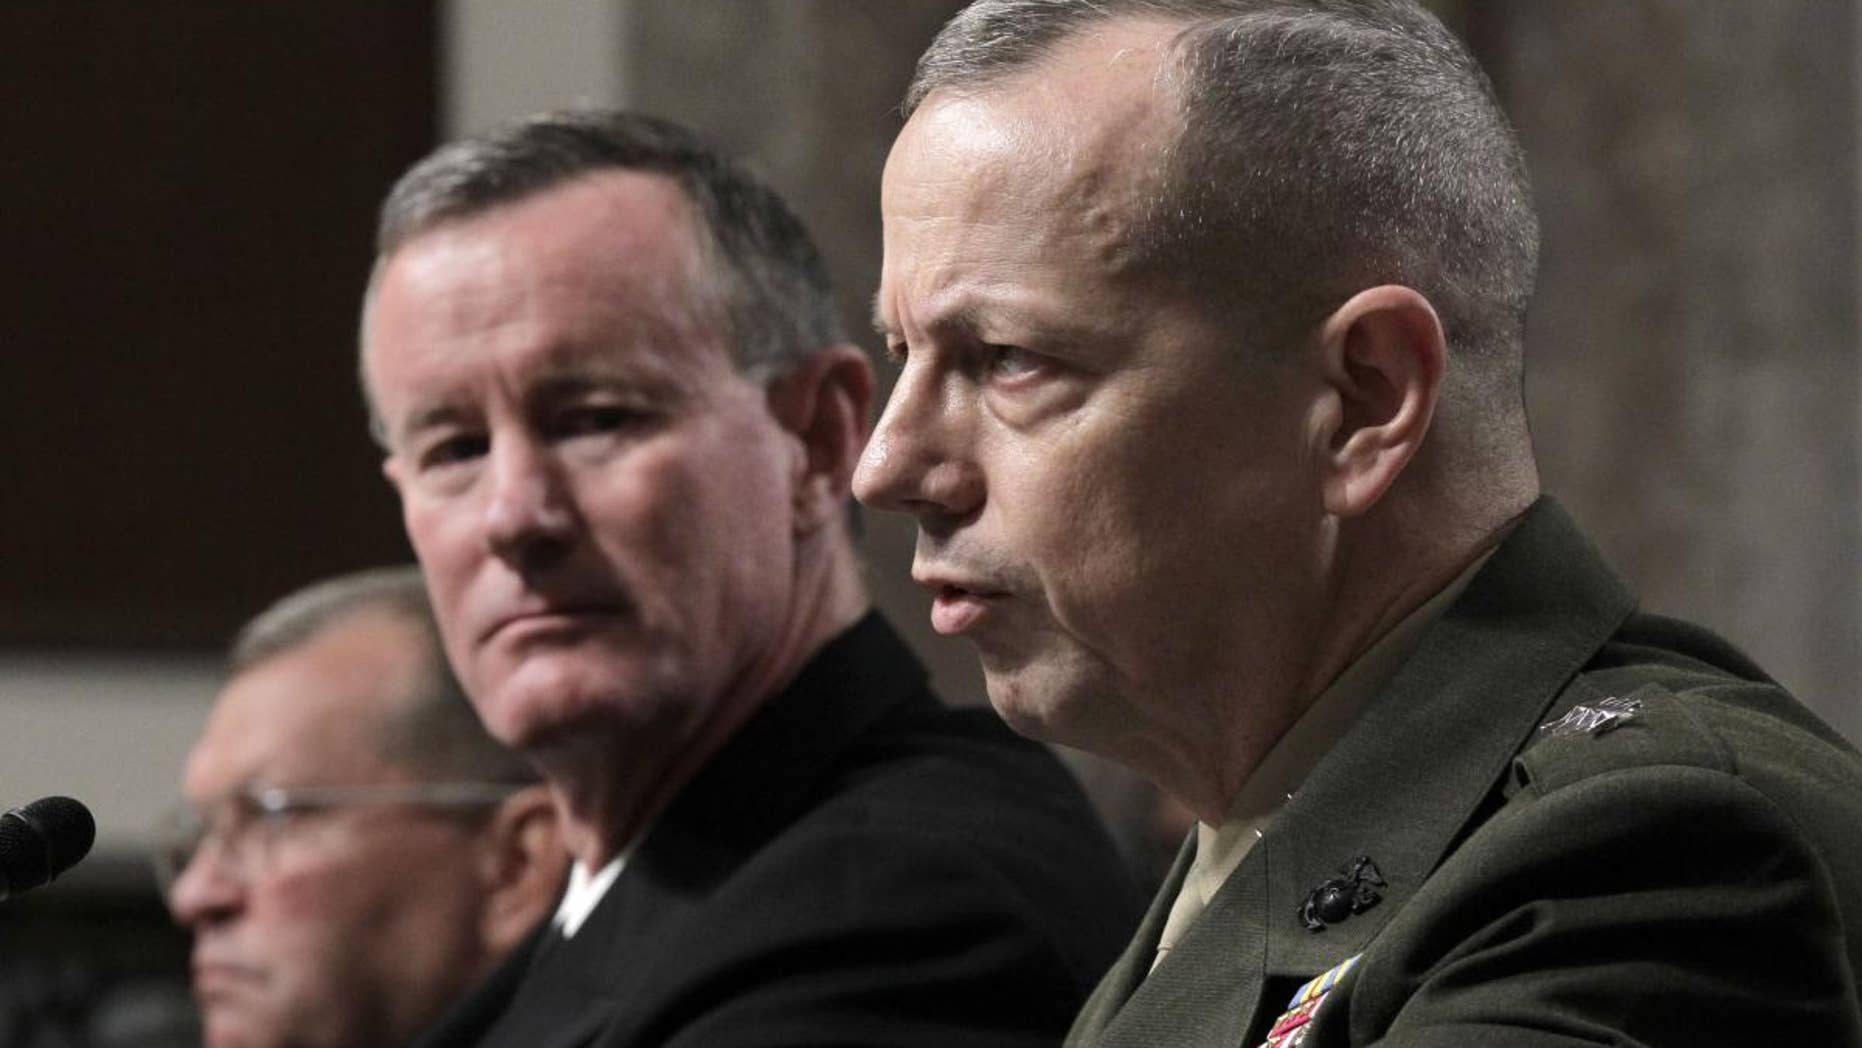 Marine Lt. Gen. John Allen, President Obama's choice to lead the military in Afghanistan, right, testifies on Capitol Hill in Washington, Tuesday, June 28, 2011, before the Senate Armed Services Committee hearing on his nomination. (AP Photo/J. Scott Applewhite)